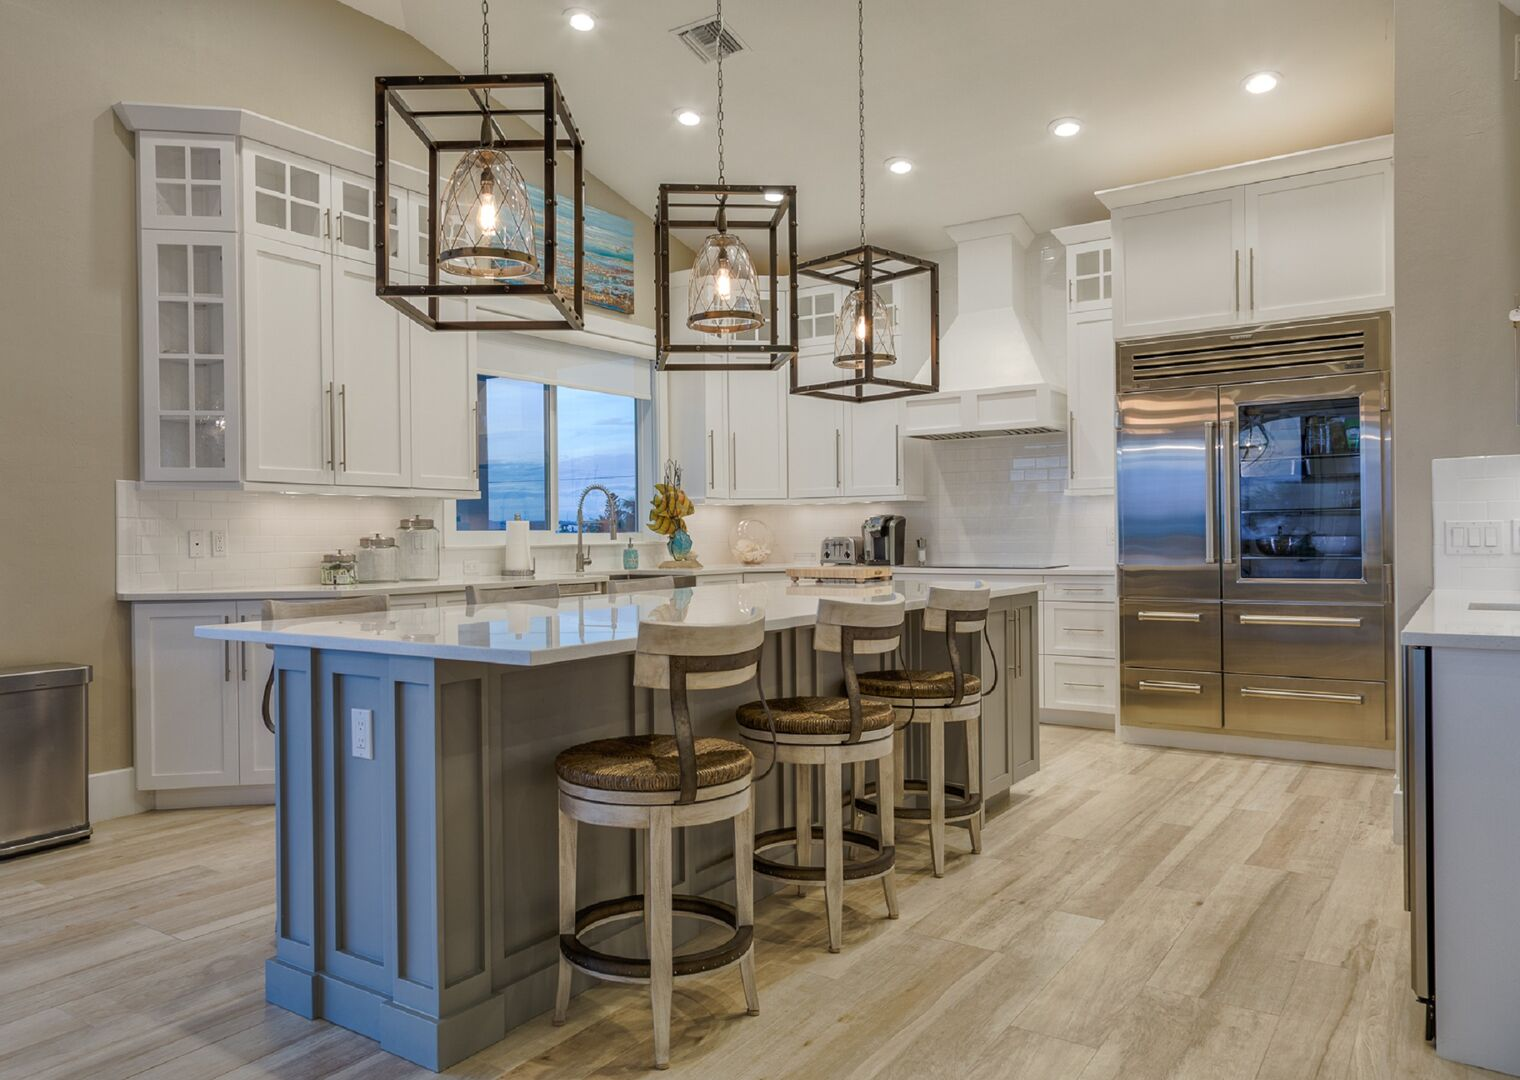 The kitchen island, with ornate hanging lights above it, and ample seating alongside.